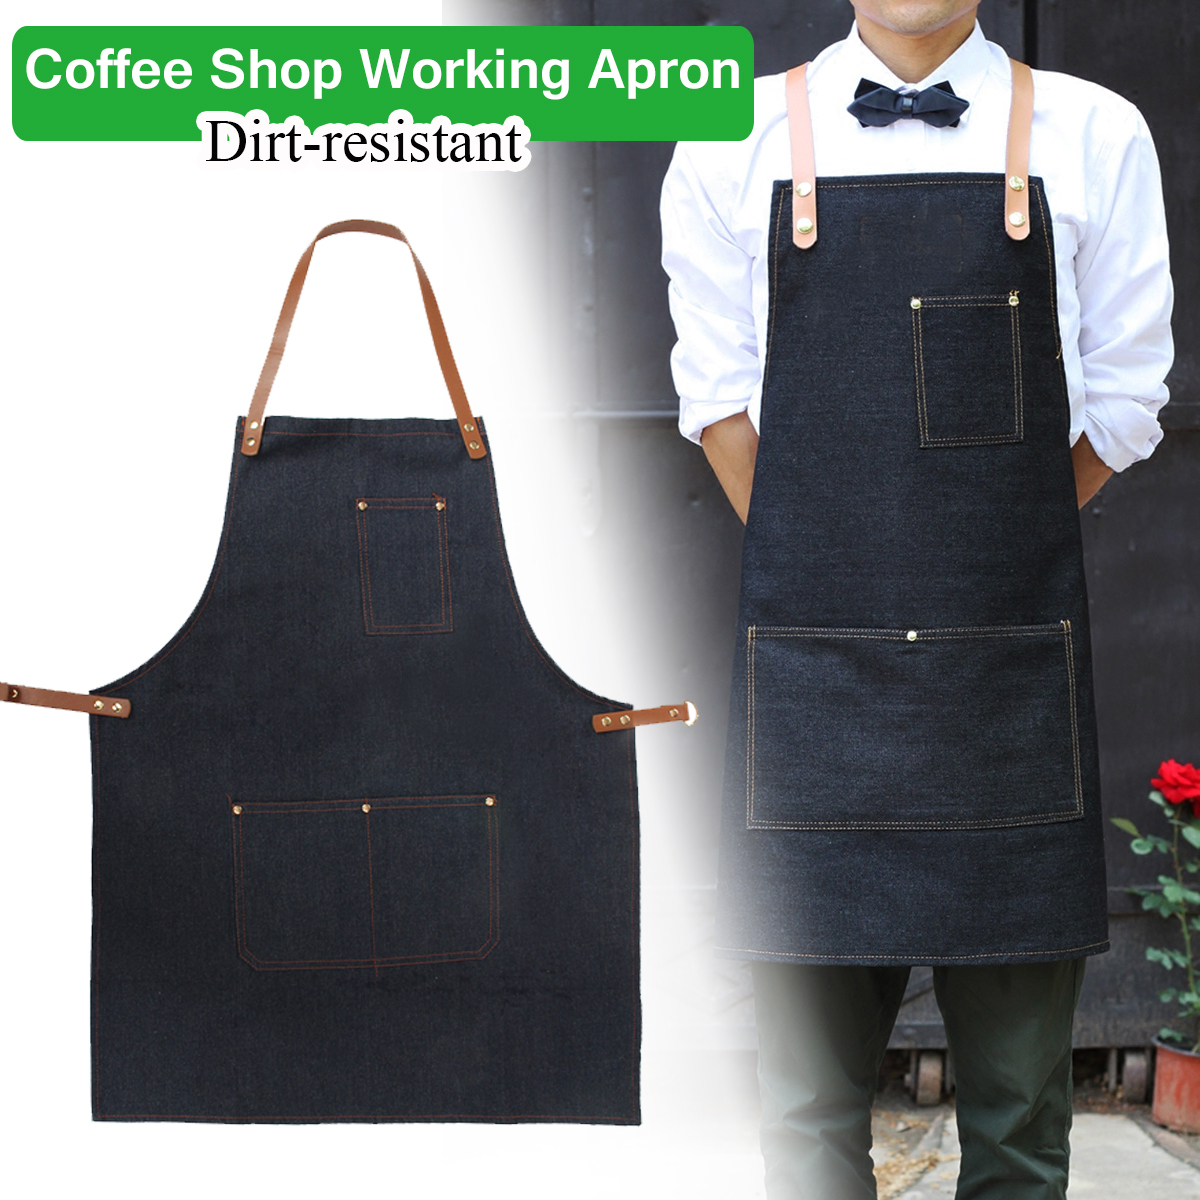 kitchen aprons cabinet drawer slides apron work clothes cafe barista pockets soldering barber denim workwear straps cod